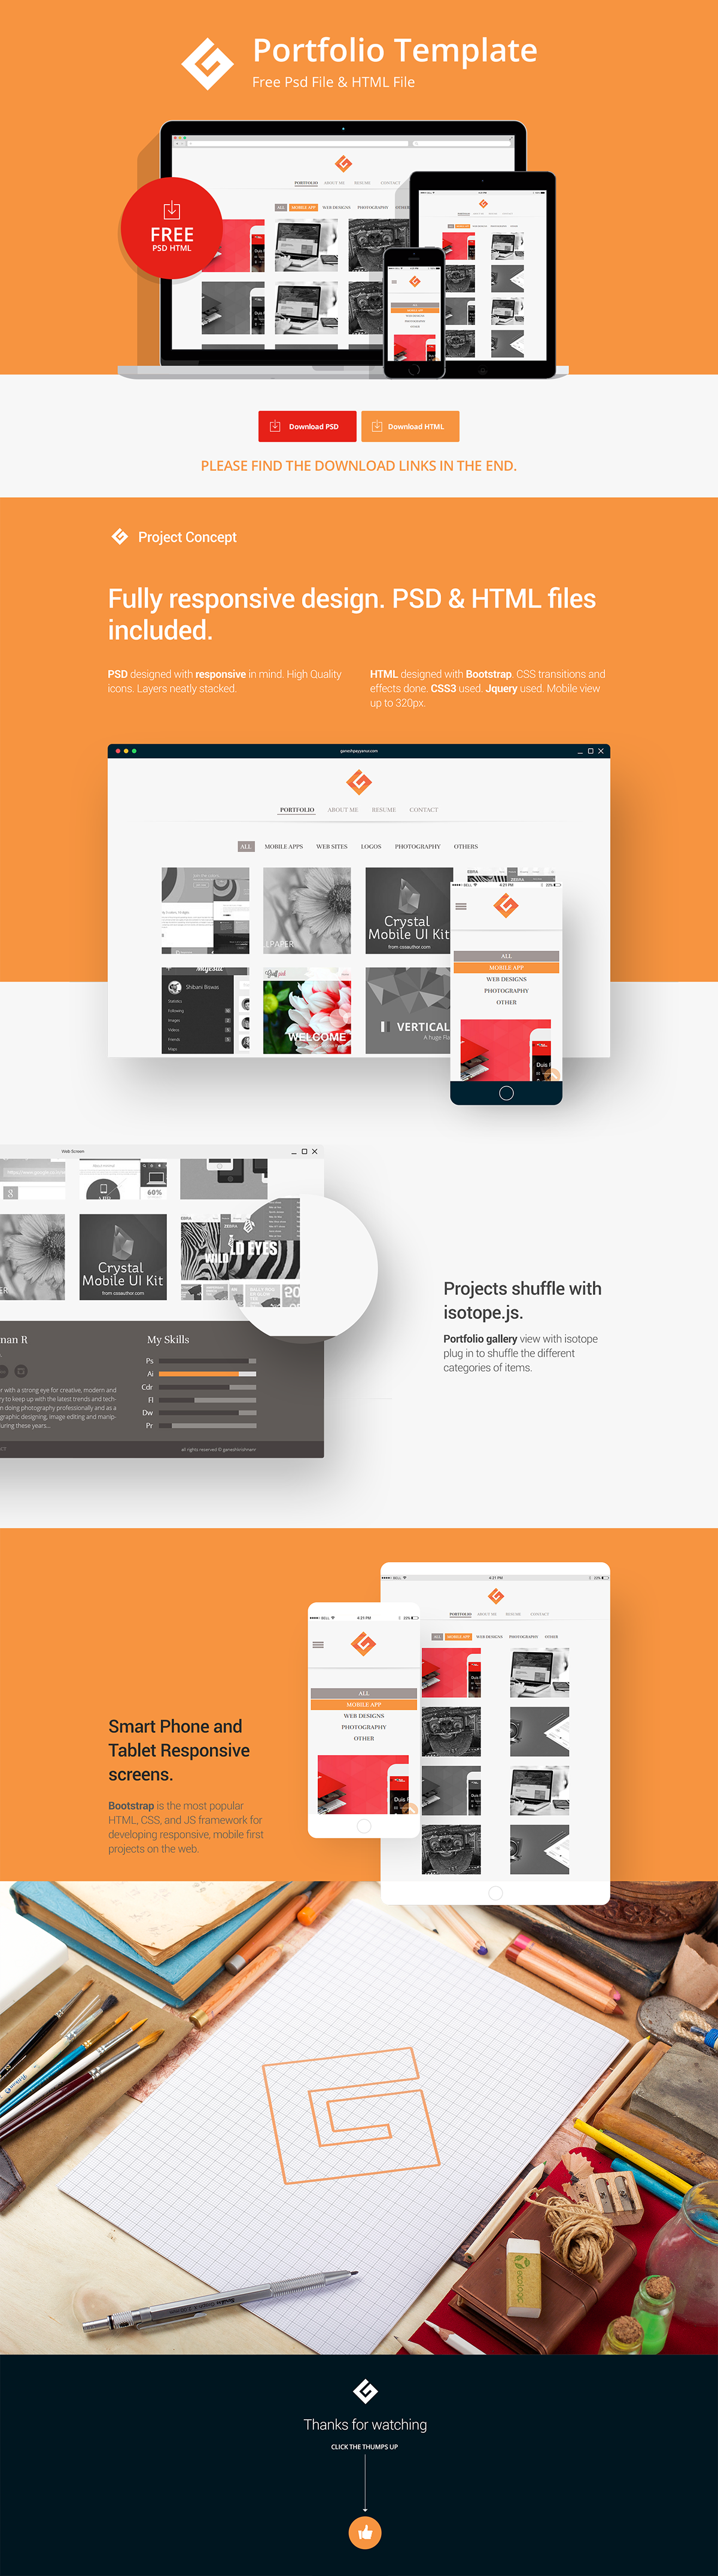 Portfolio Template PSD HTML Free Download on Behance